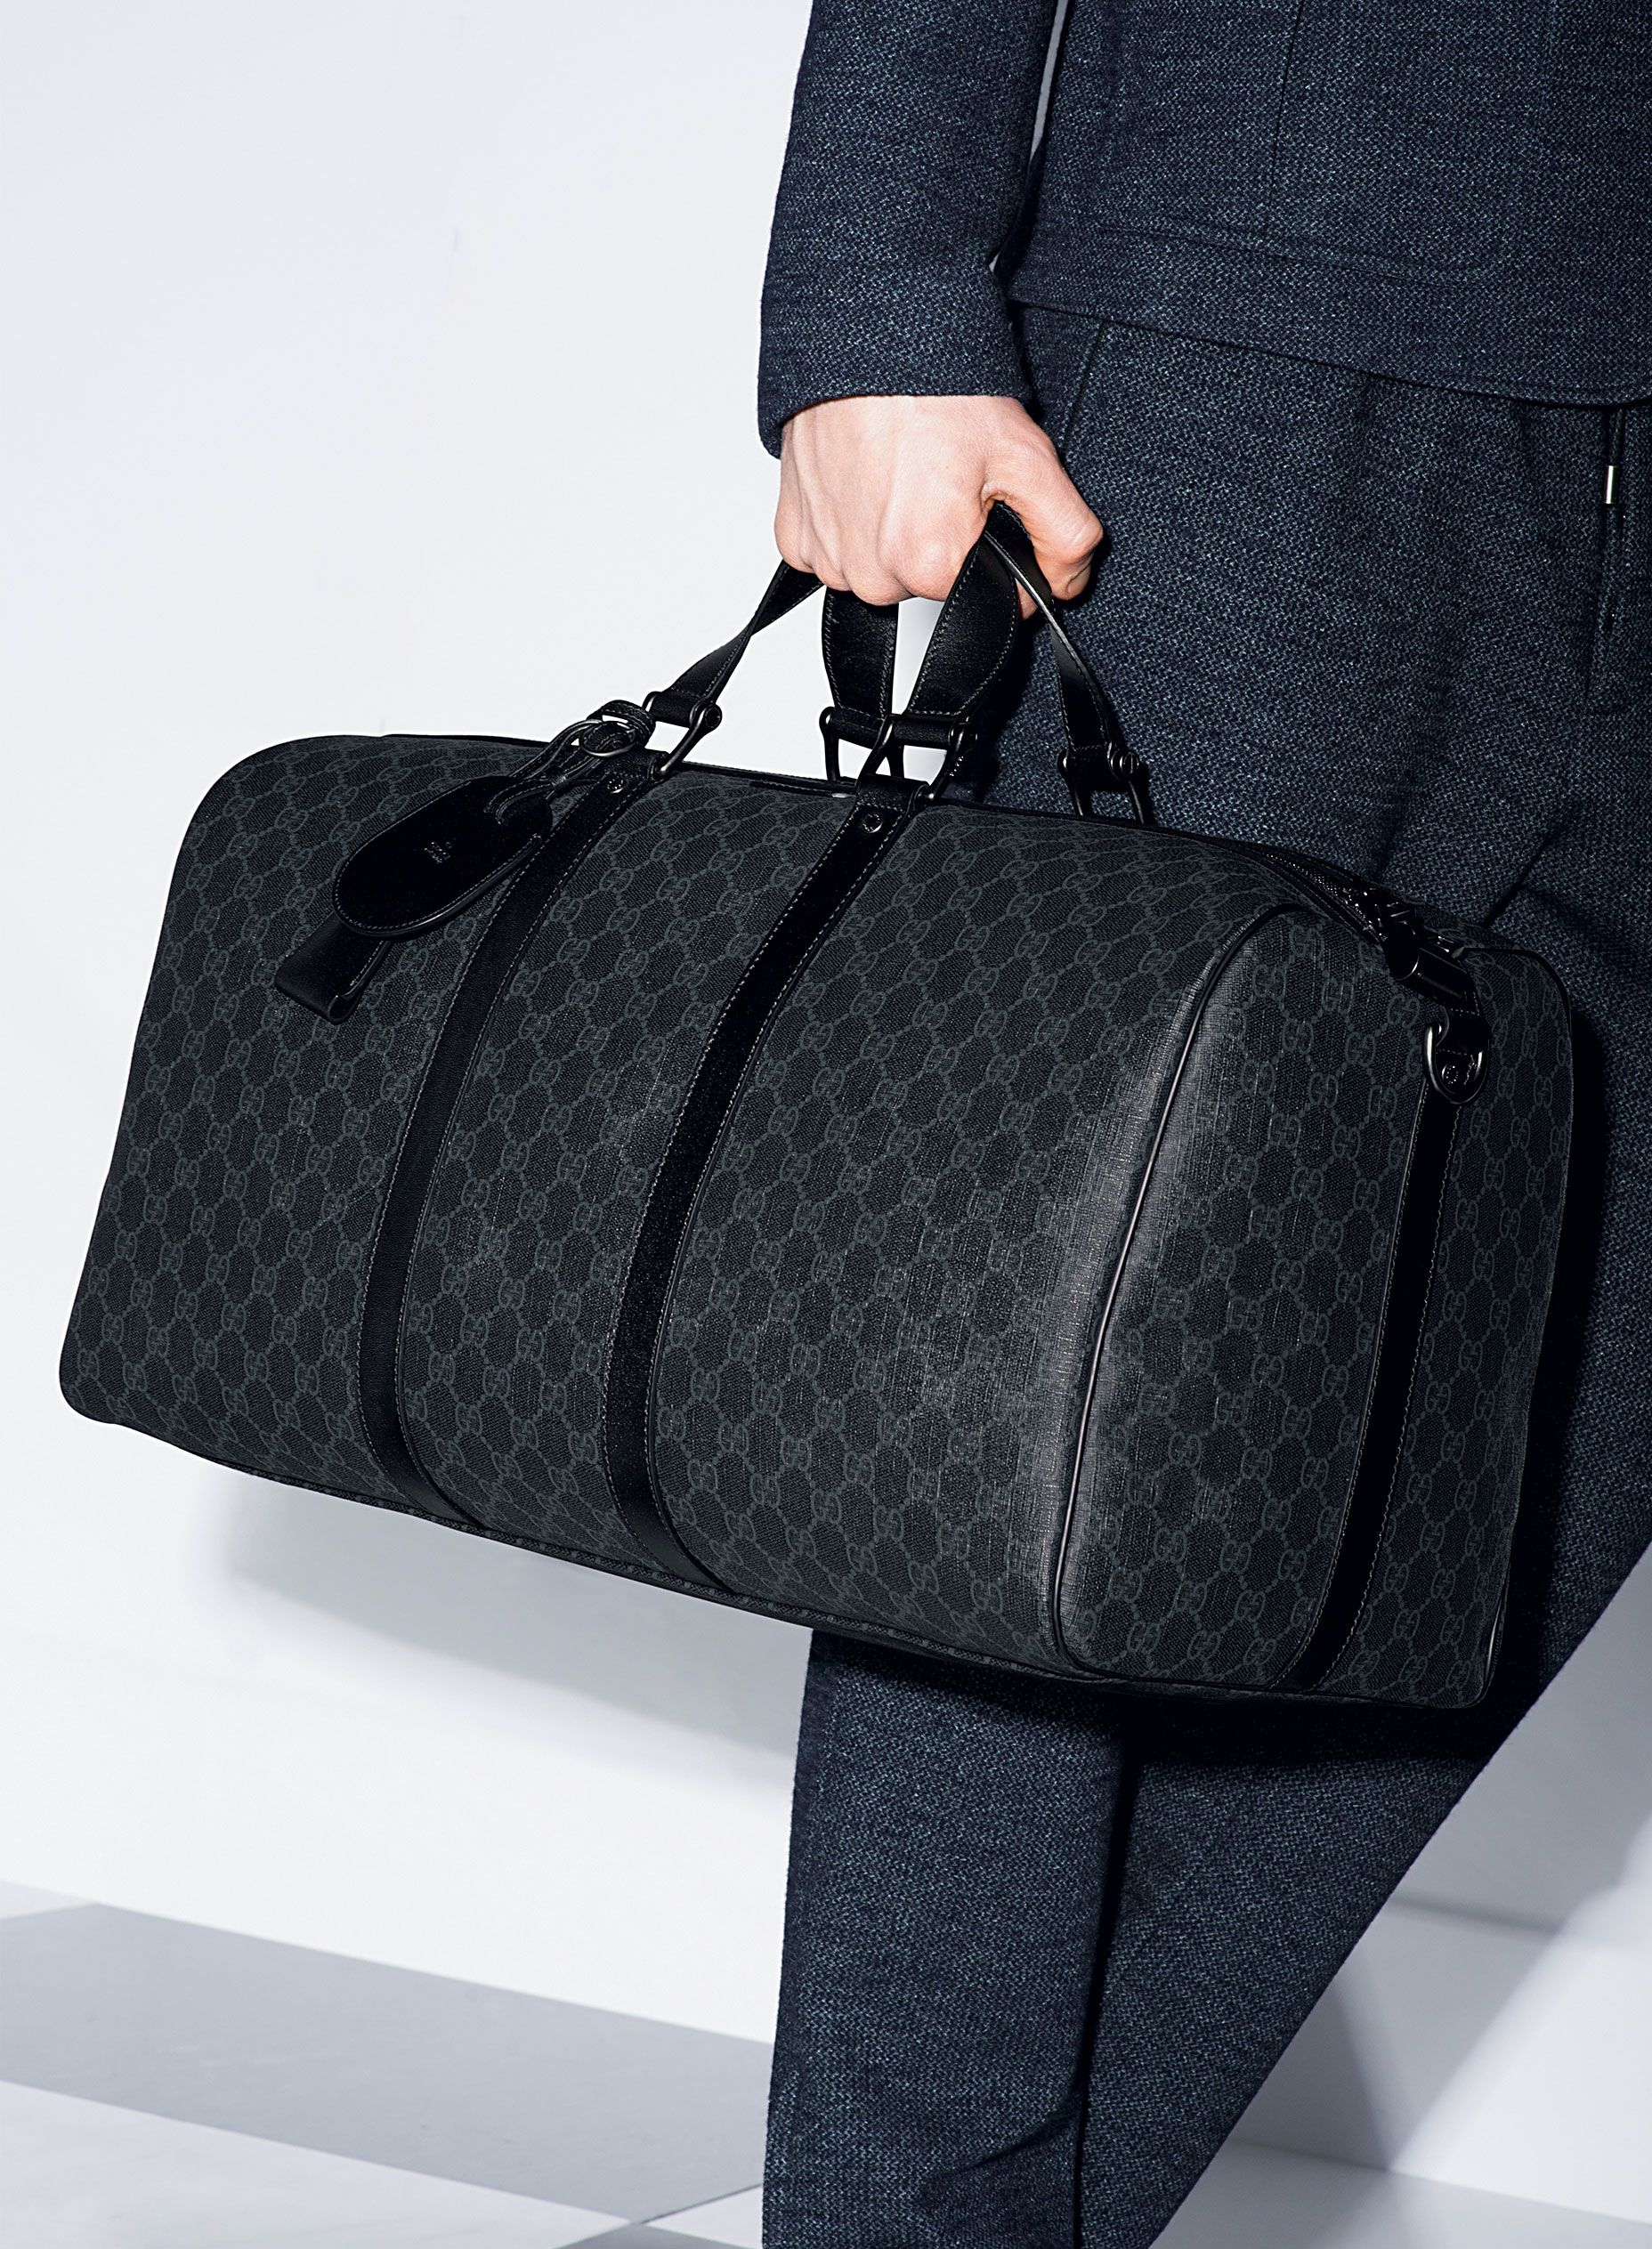 80fe9e7a59d17f Gucci Pre-Fall 2014: GG Supreme Canvas Carry-On Duffel Bag #duffel #bag  #menstyle #menswear